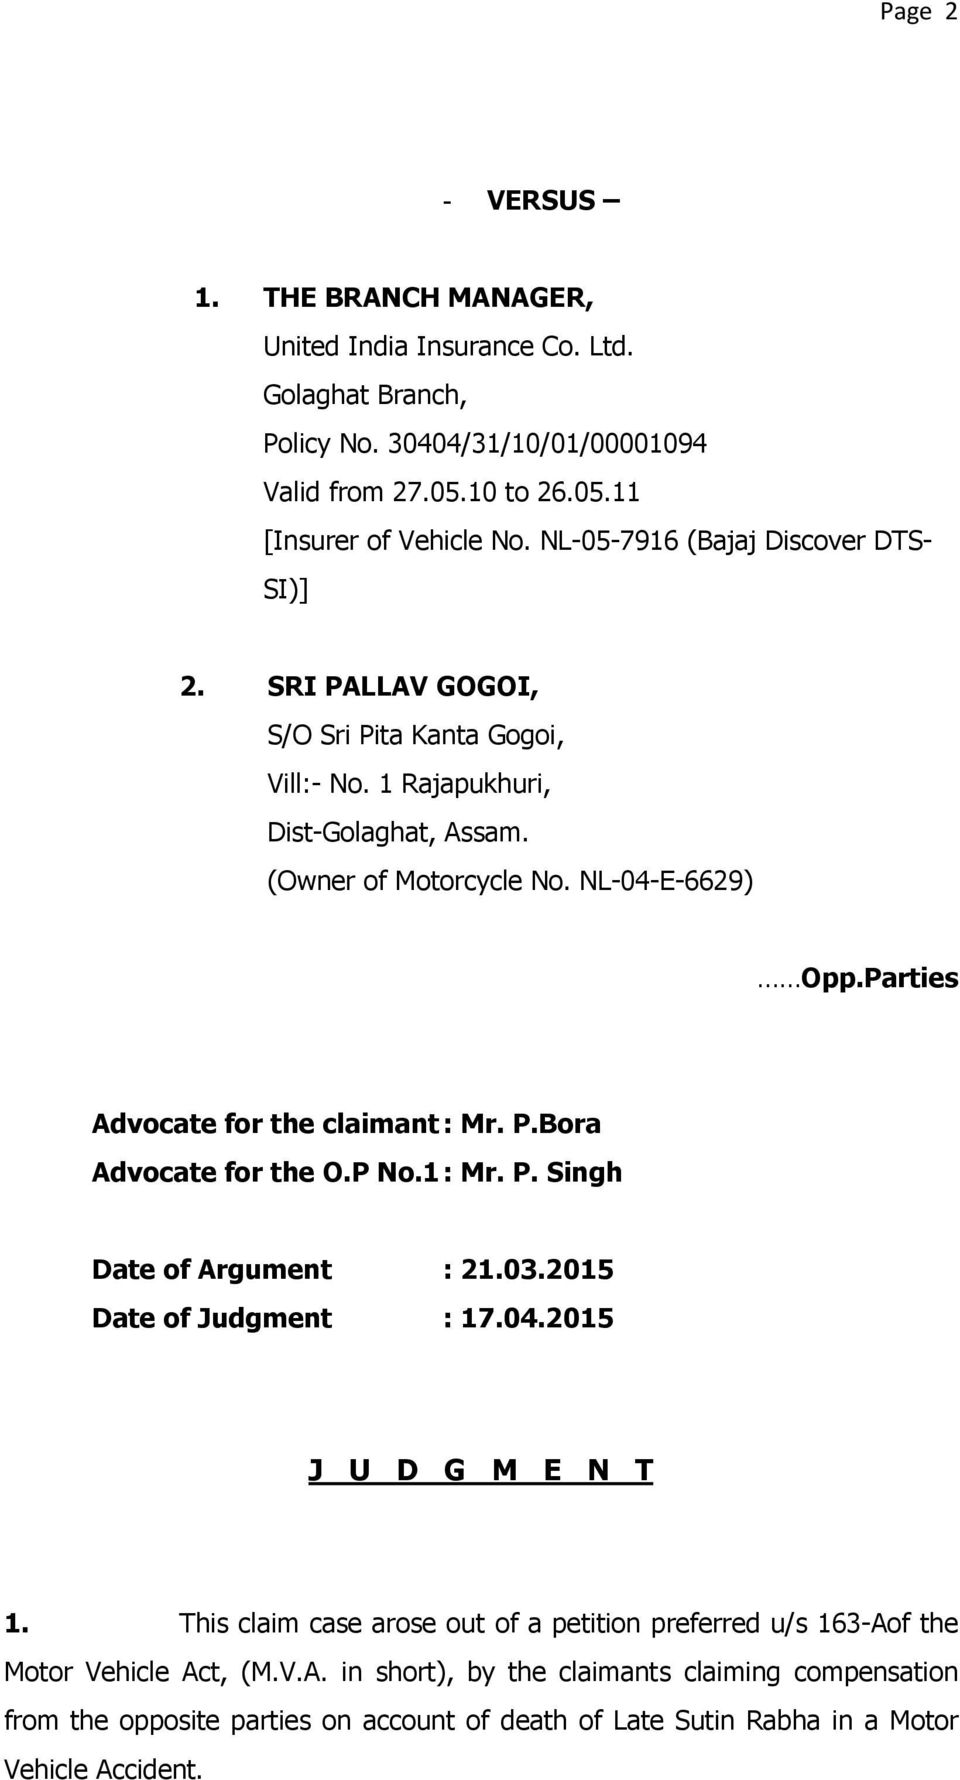 Parties Advocate for the claimant : Mr. P.Bora Advocate for the O.P No.1 : Mr. P. Singh Date of Argument : 21.03.2015 Date of Judgment : 17.04.2015 J U D G M E N T 1.